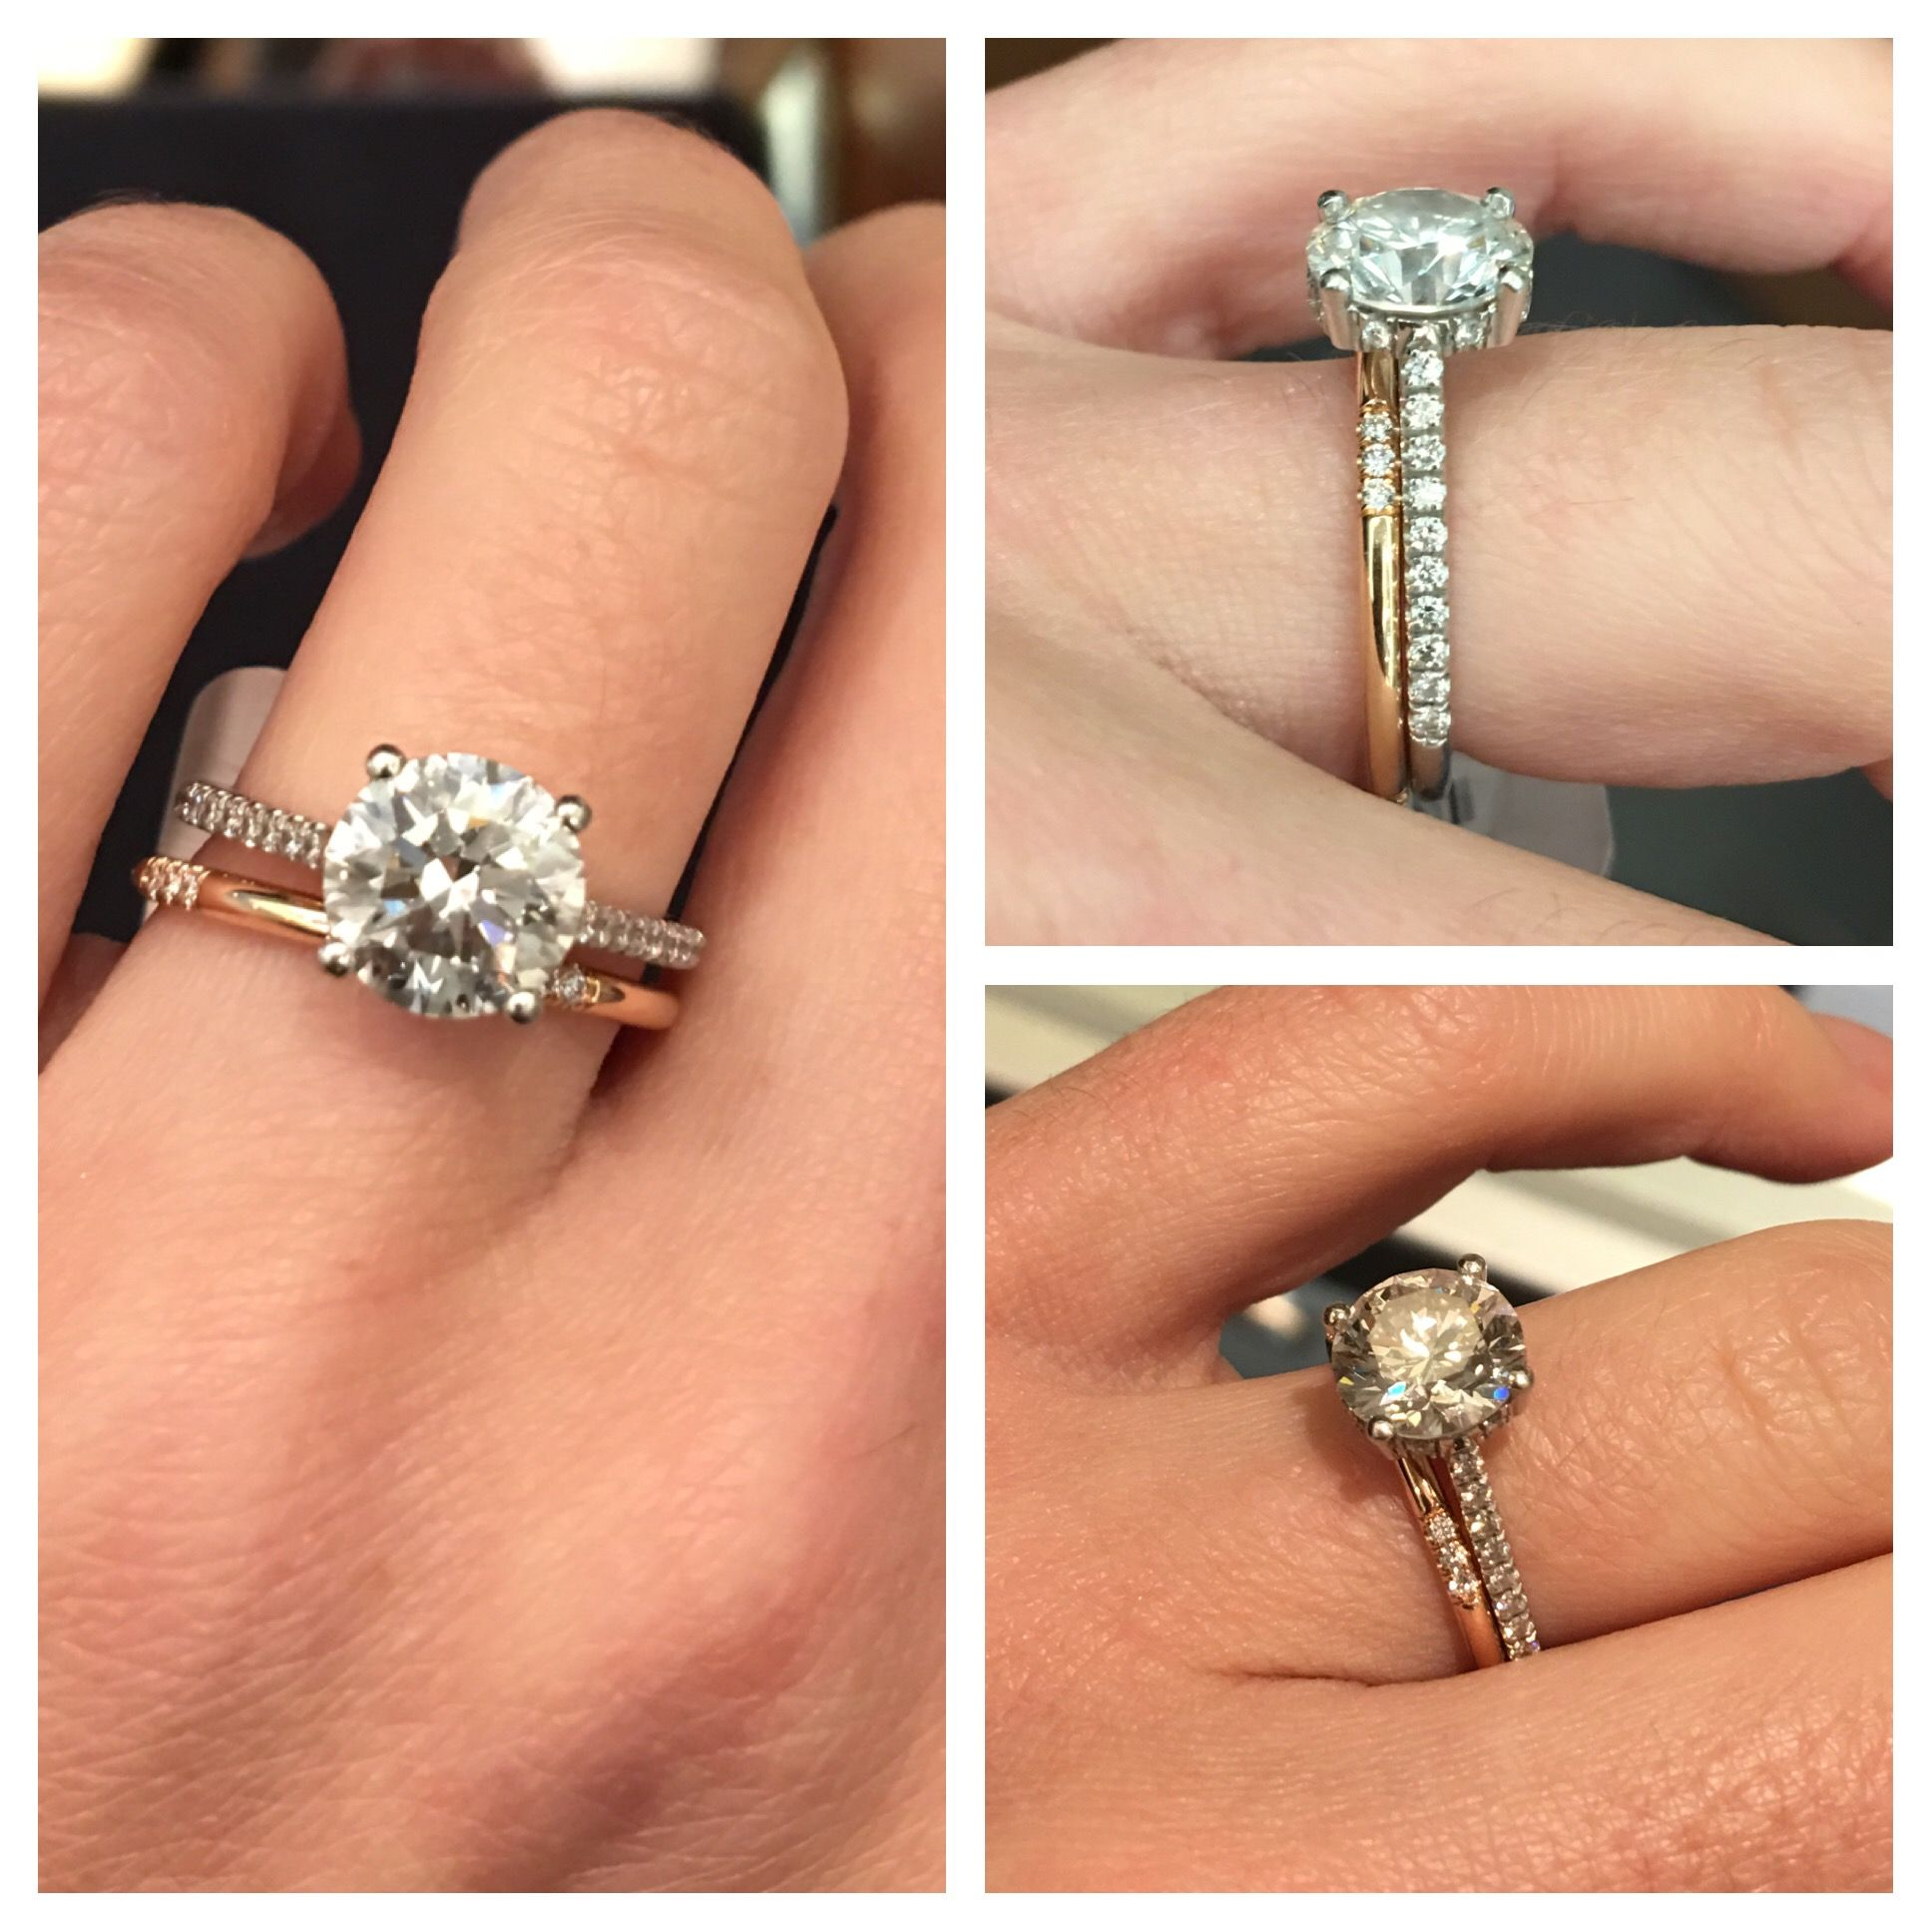 Delicate Rose Gold Wedding Band And Platinum Engagement Ring Rings Engagement Wedding Rings